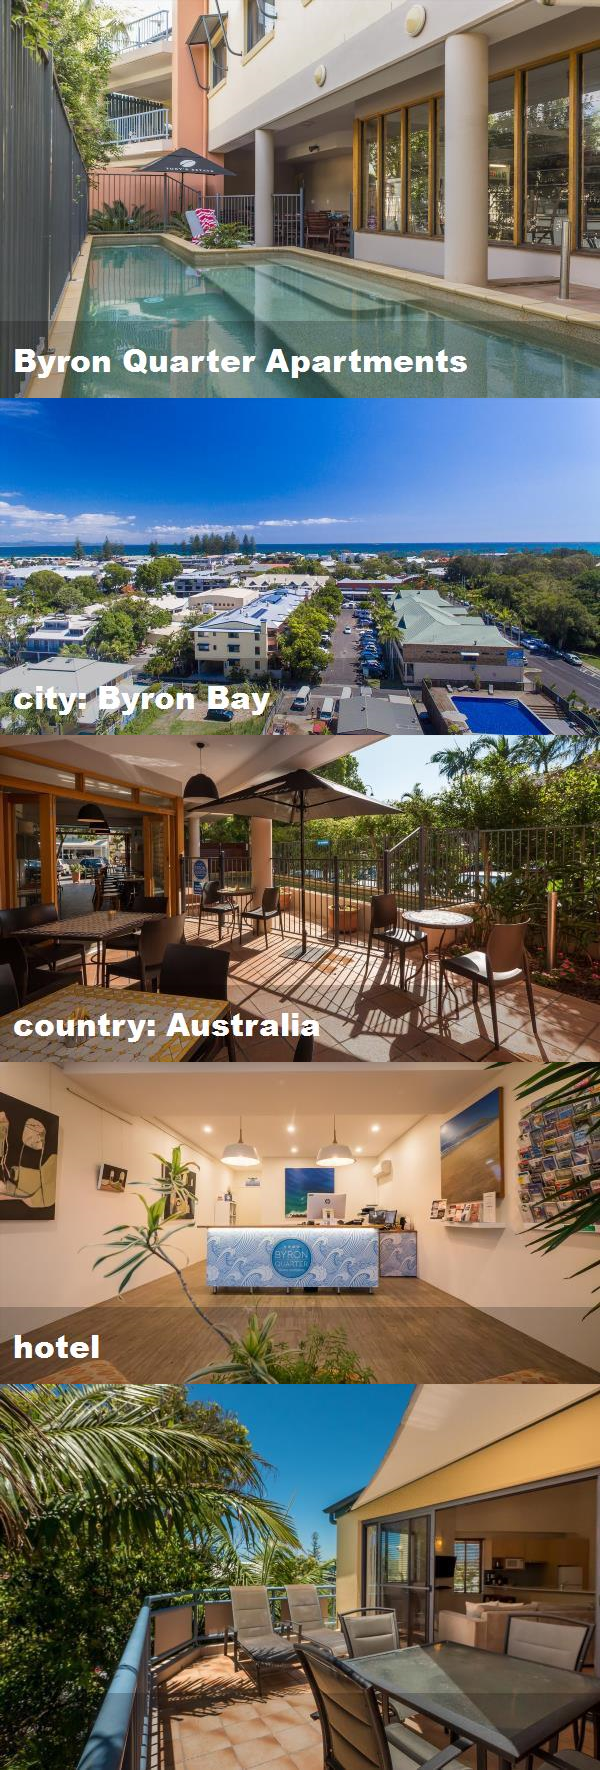 Byron Quarter Apartments, city: Byron Bay, country ...